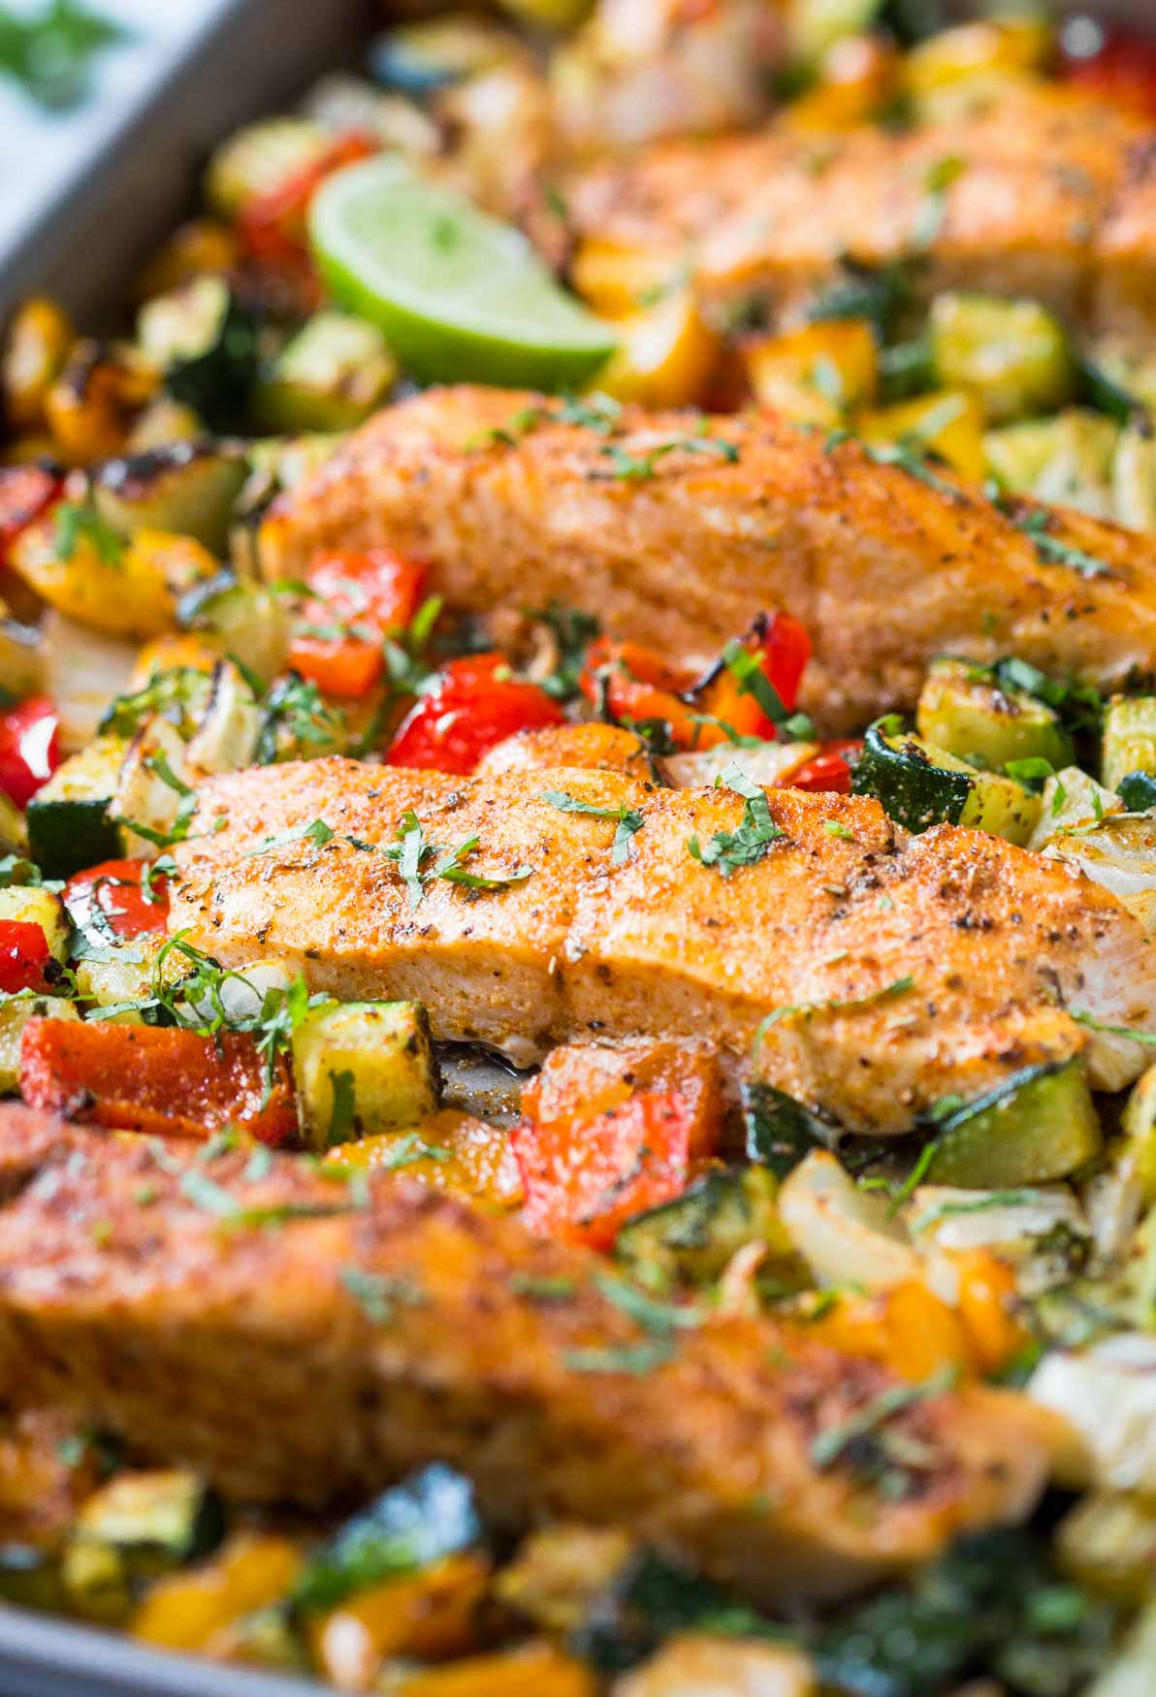 30 Min Healthy One Pan Baked Salmon And Vegetables - recipes for dinner veg